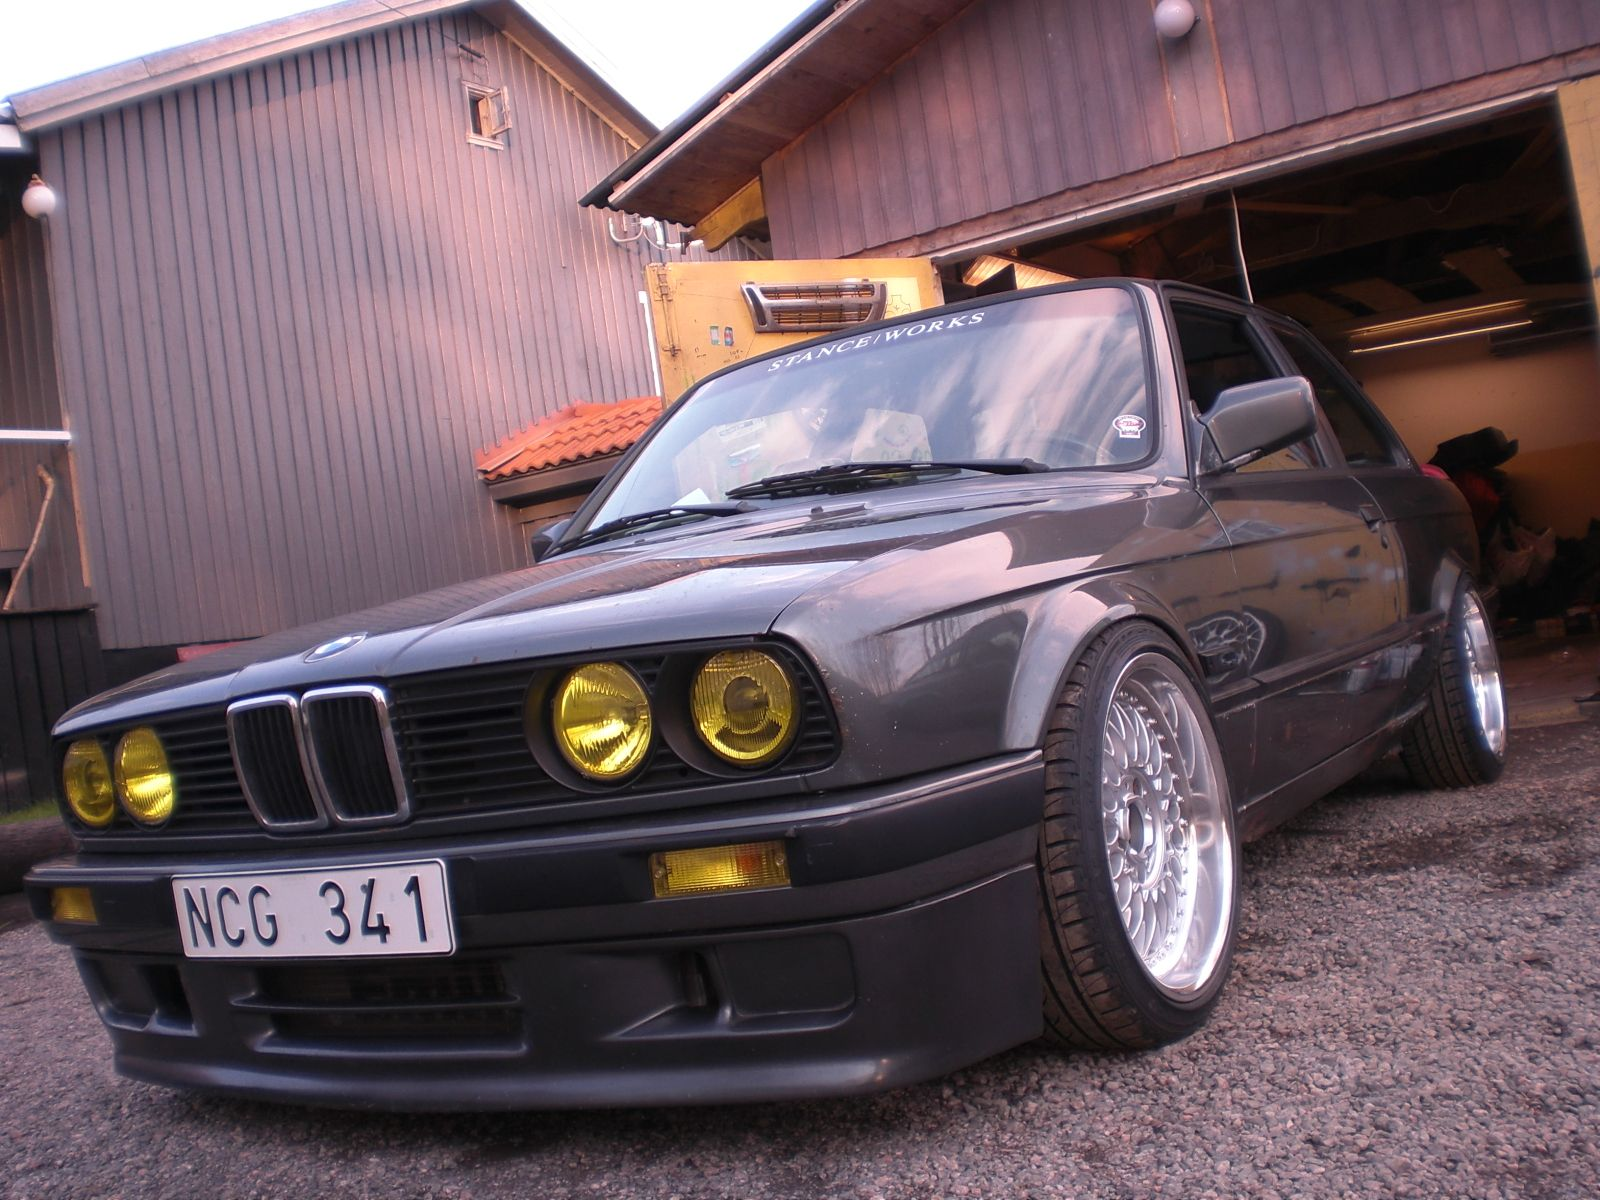 The Bbs Rc 090 Bmw Style 5 Wheels Thread Page 15